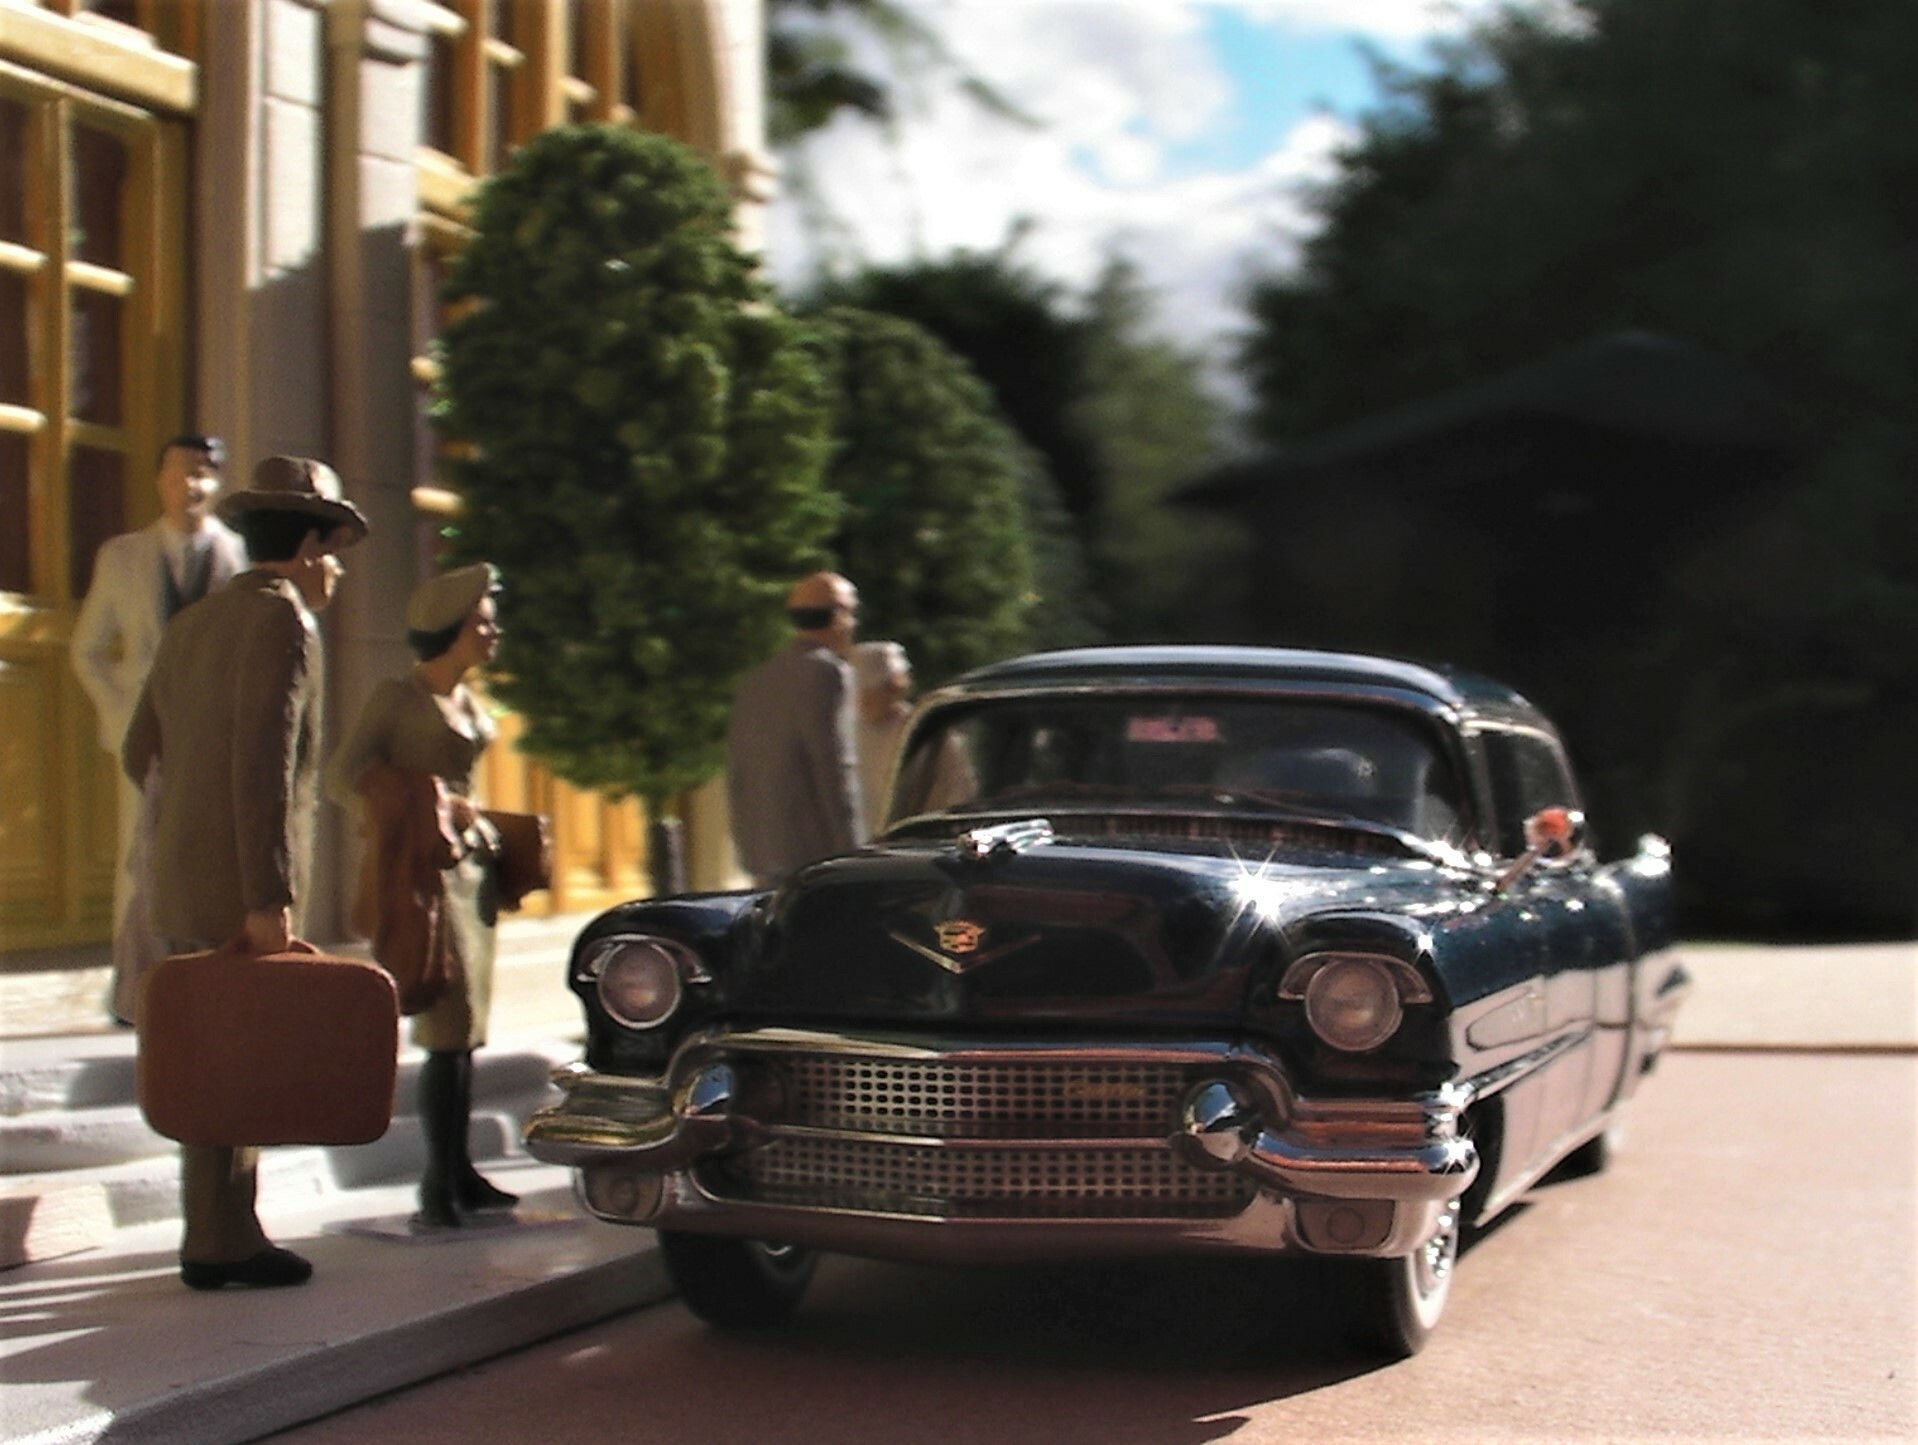 Cadillac 56 Serries 75 Fleetwood Limousine (5)